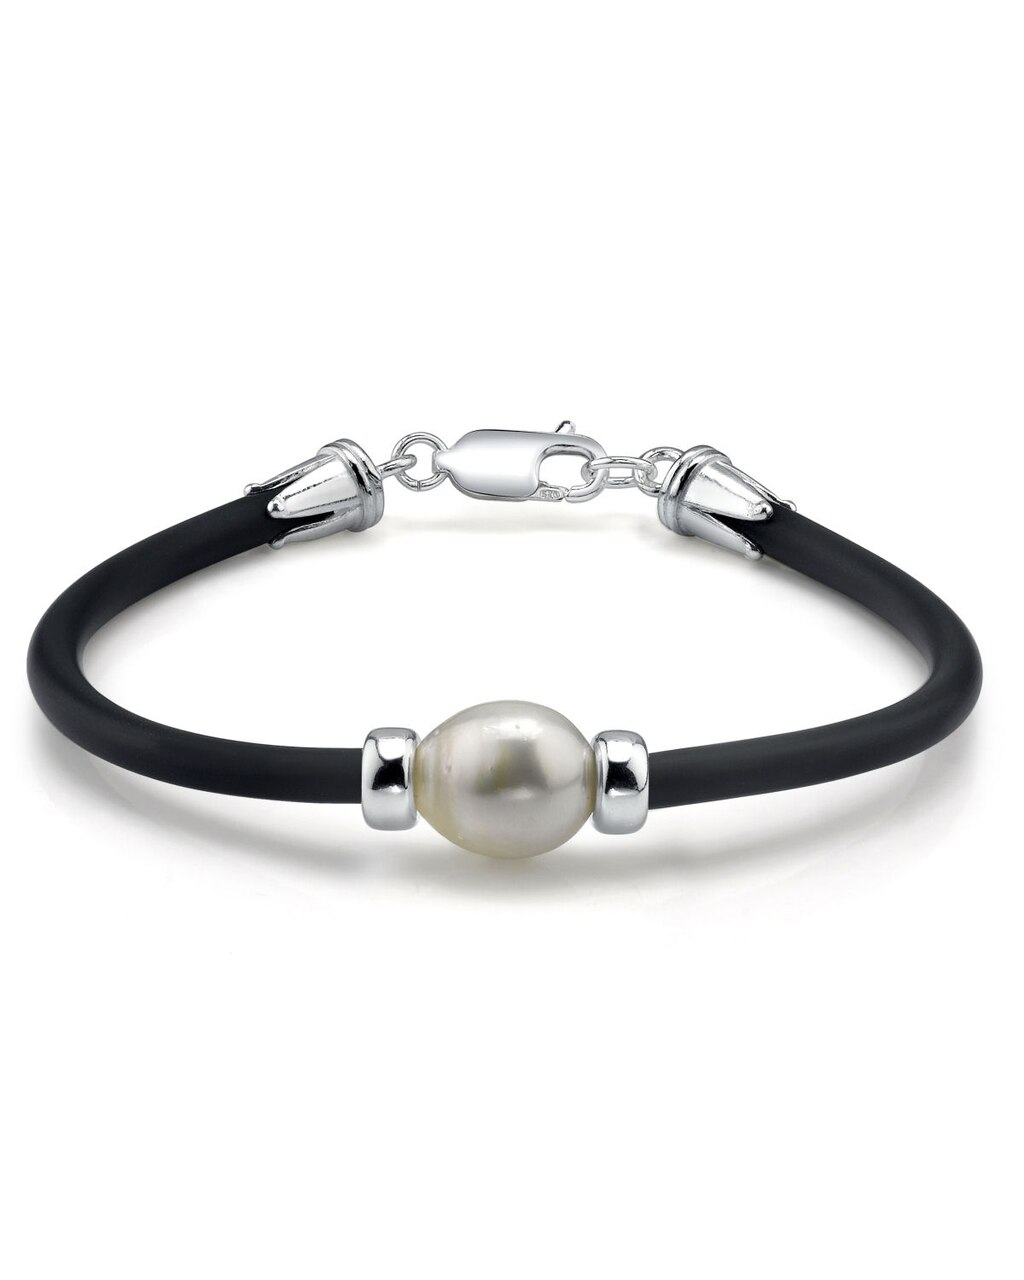 This beautiful bracelet features a baroque shaped White South Sea pearl